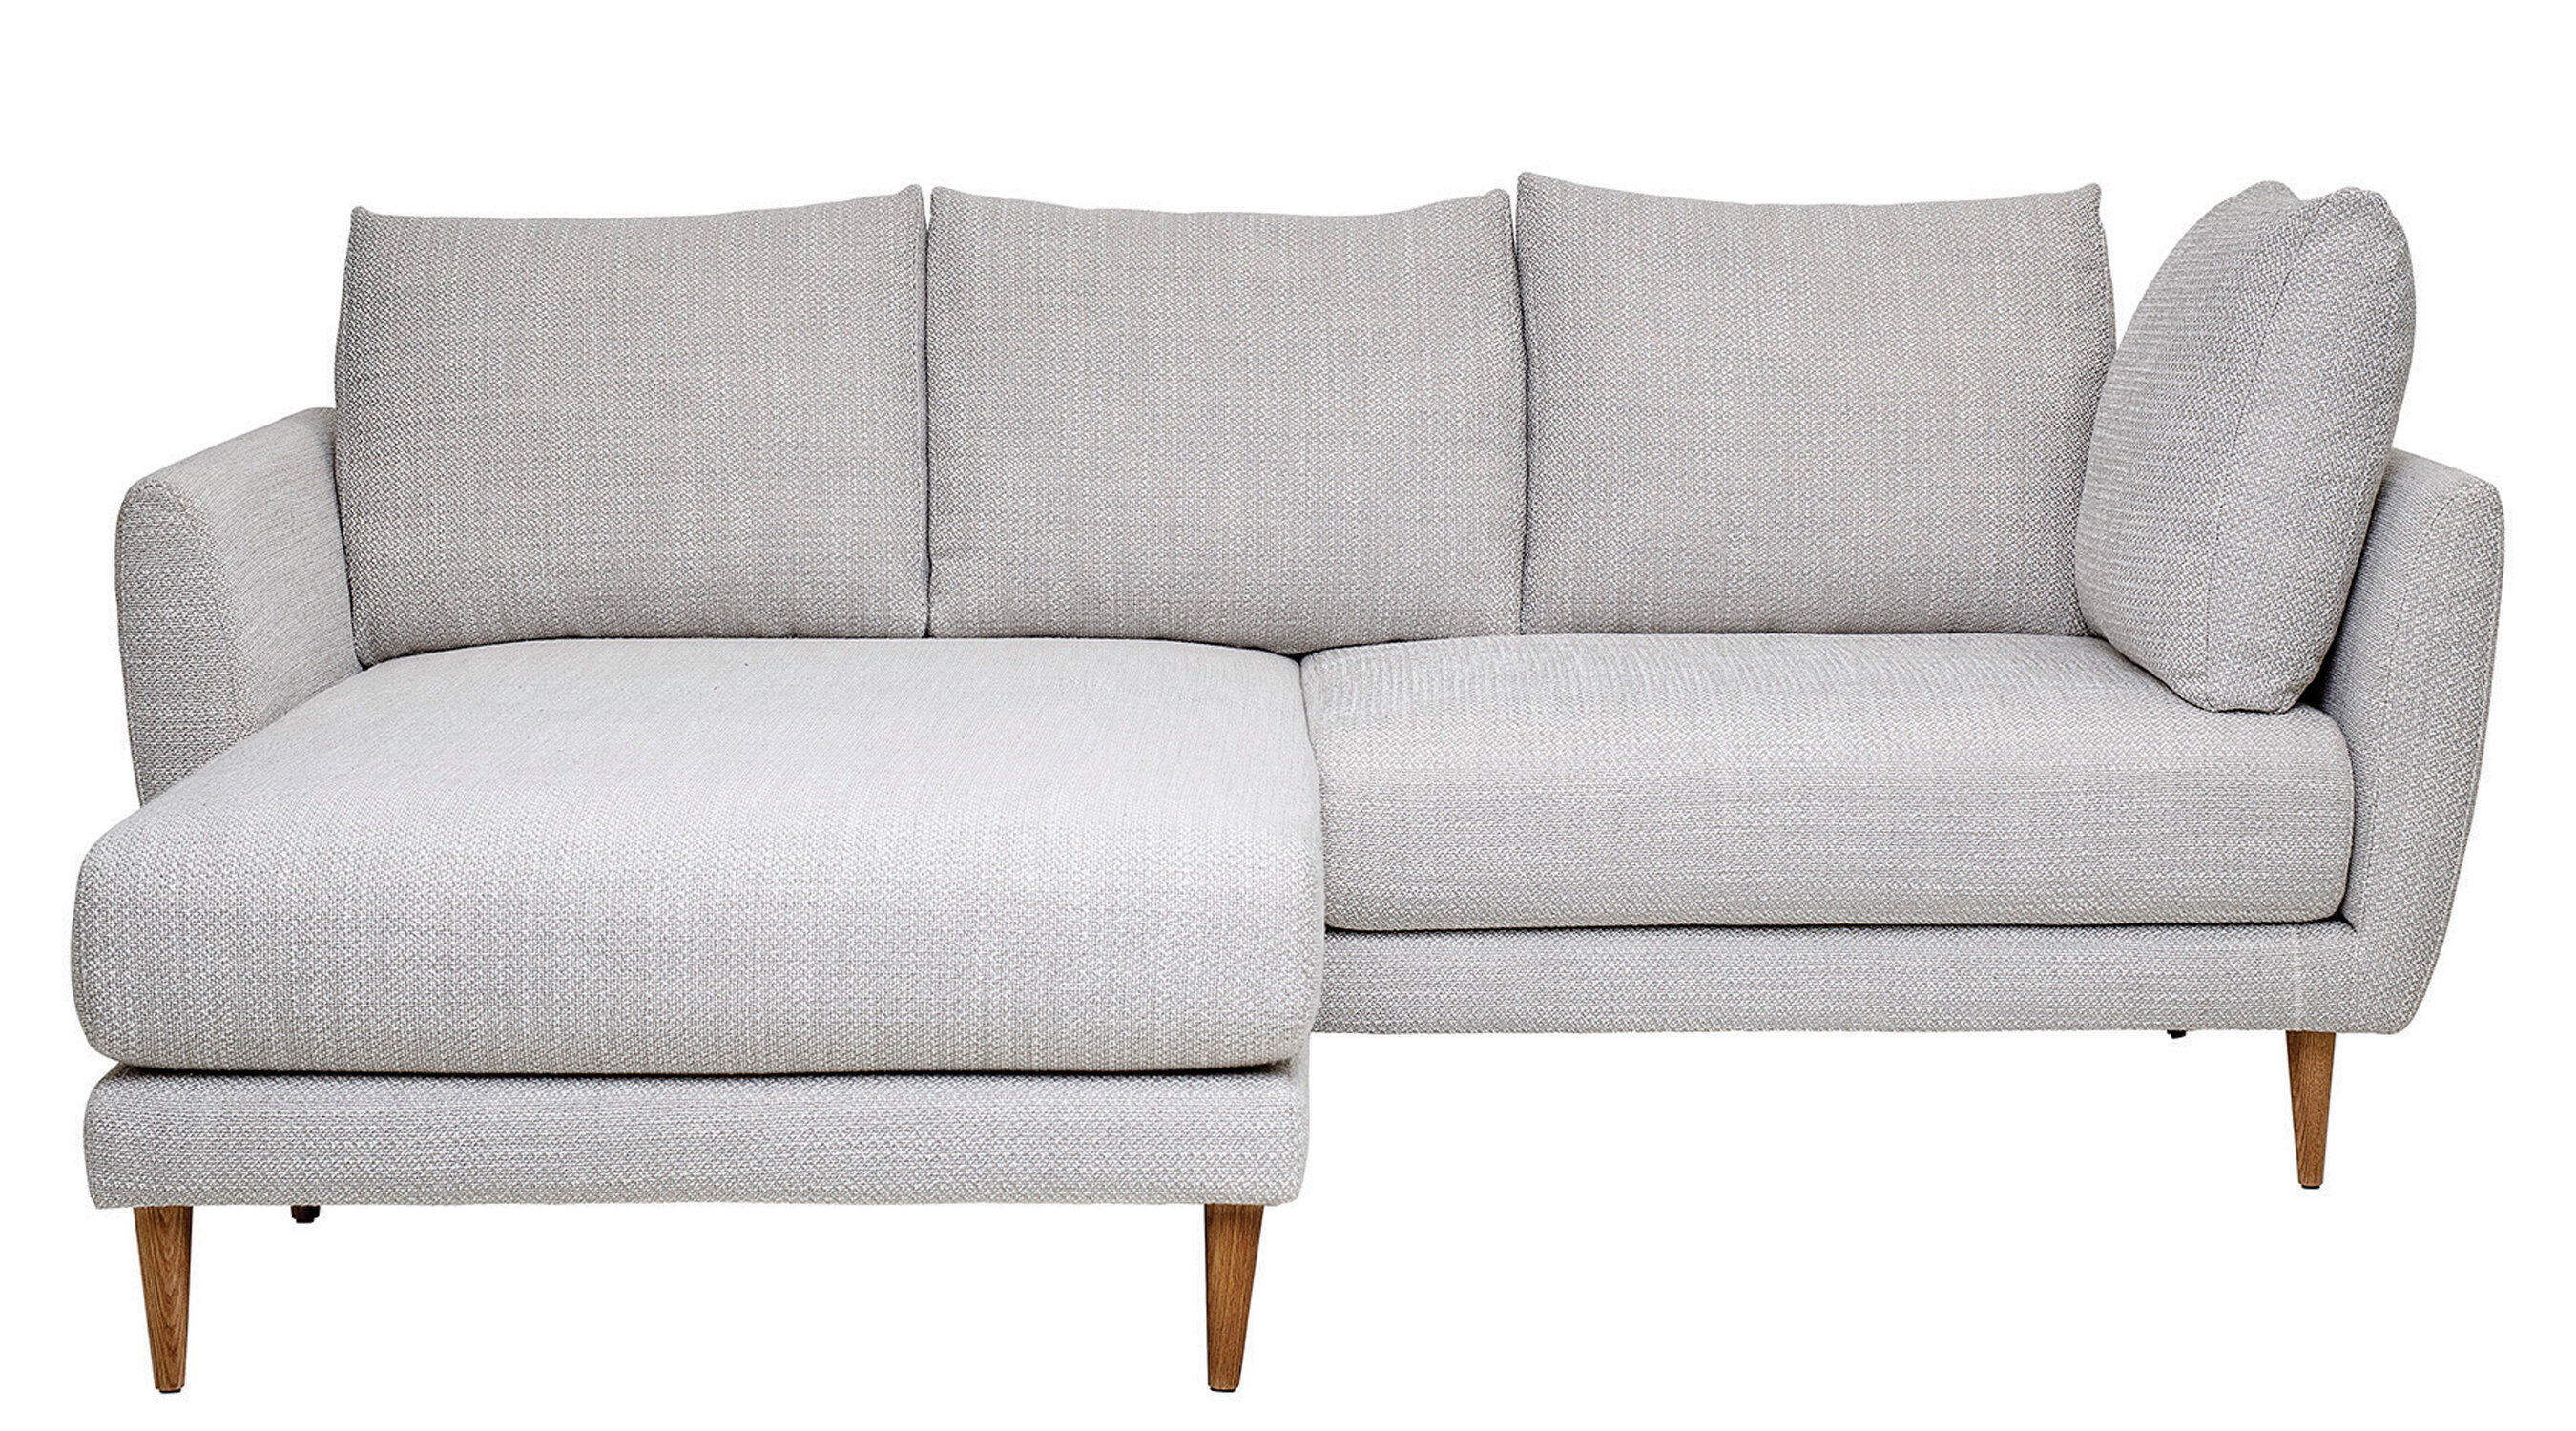 Theda Modular 85 Round Arm Sofa Chaise